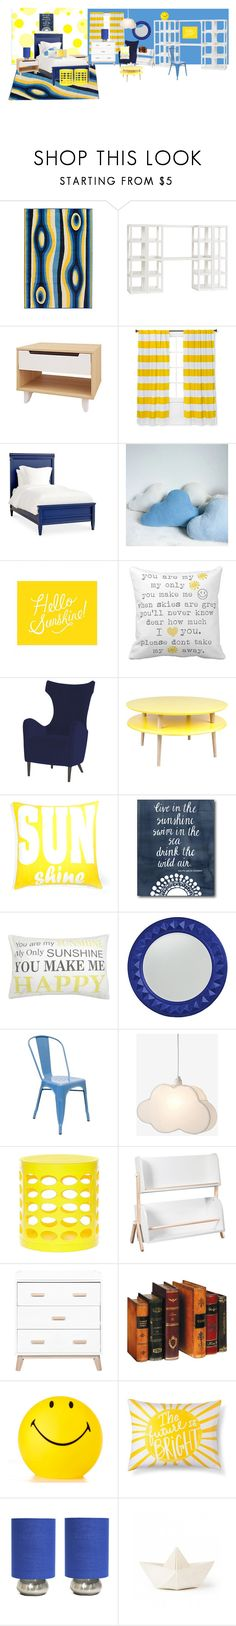 """""""Son-shine"""" by nerd-muffin ❤ liked on Polyvore featuring interior, interiors, interior design, home, home decor, interior decorating, Artist's Loom, PBteen, Nexera and Pillowfort"""